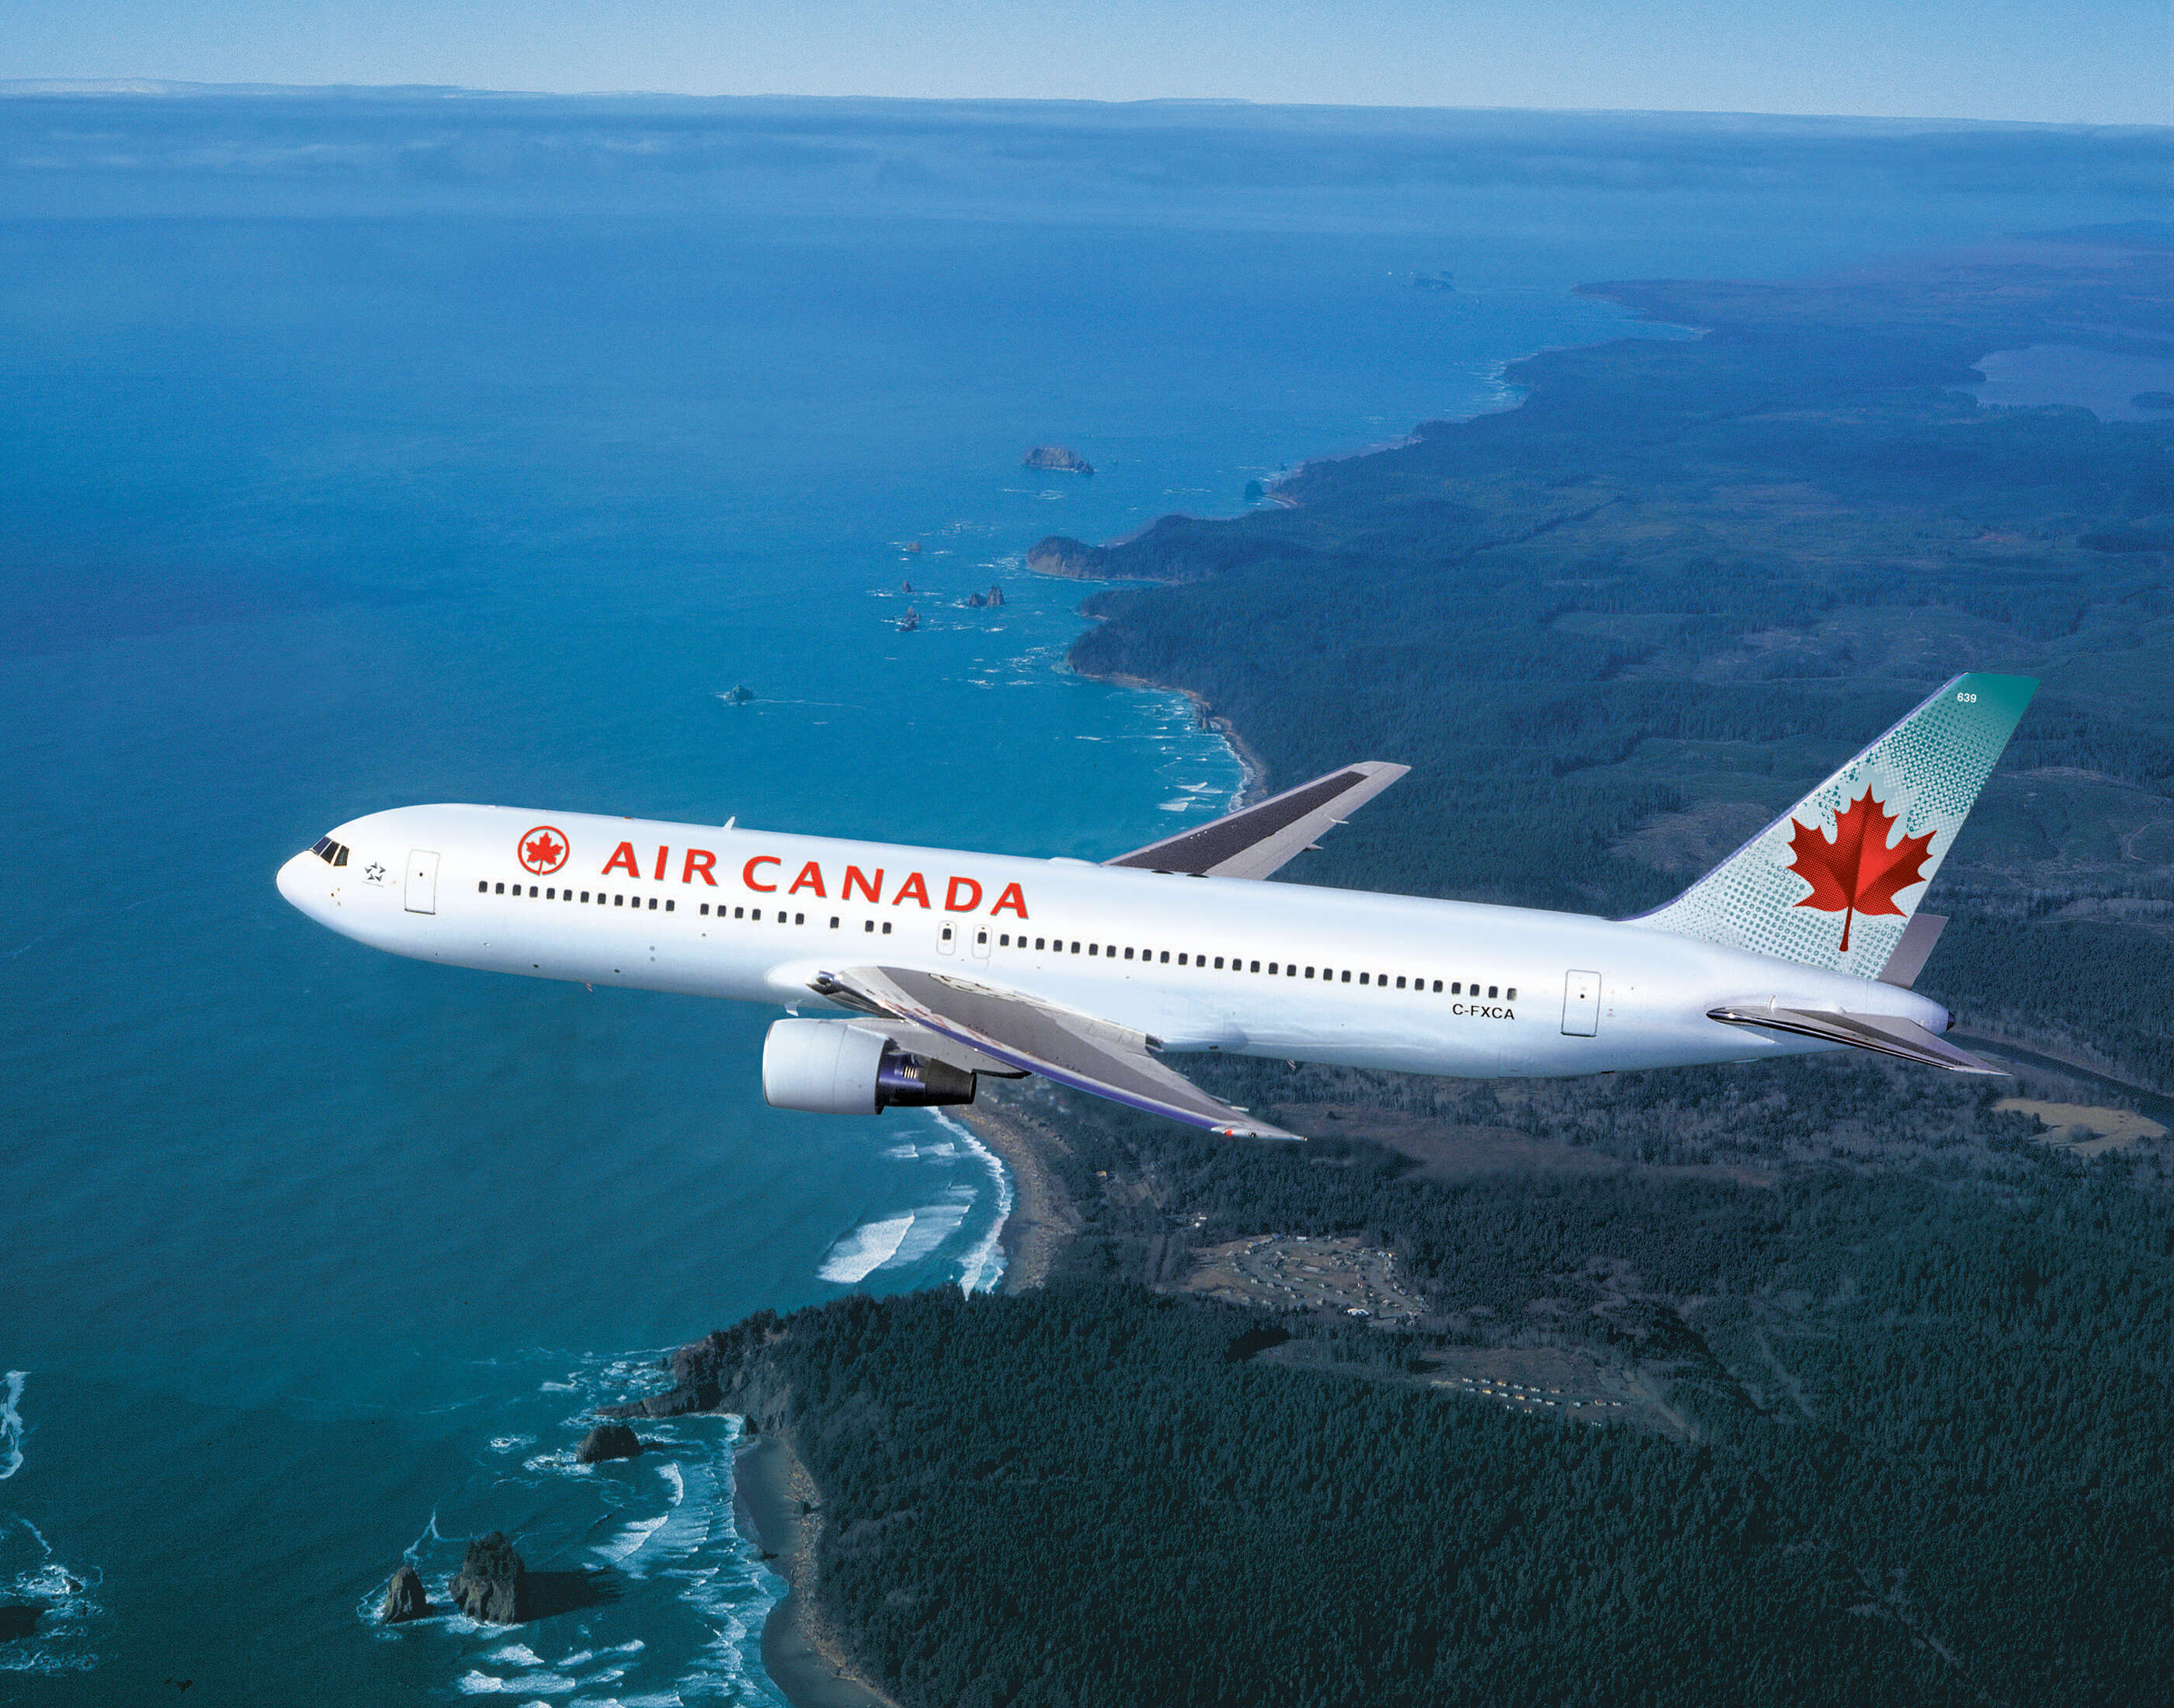 Air Canada Adds More New International Routes